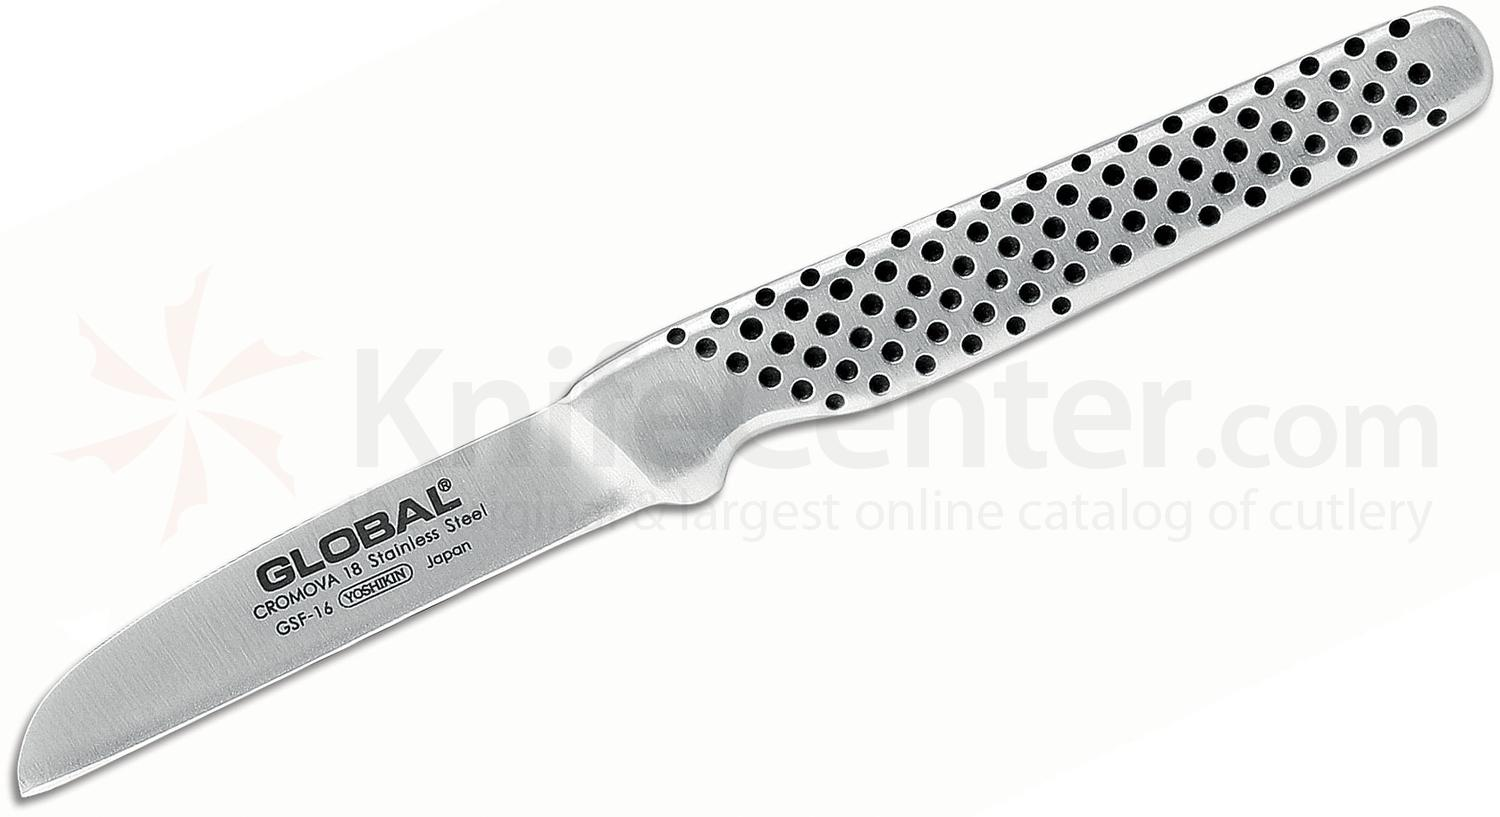 Global GSF-16 Kitchen 2.5 inch Peeling, Straight Knife